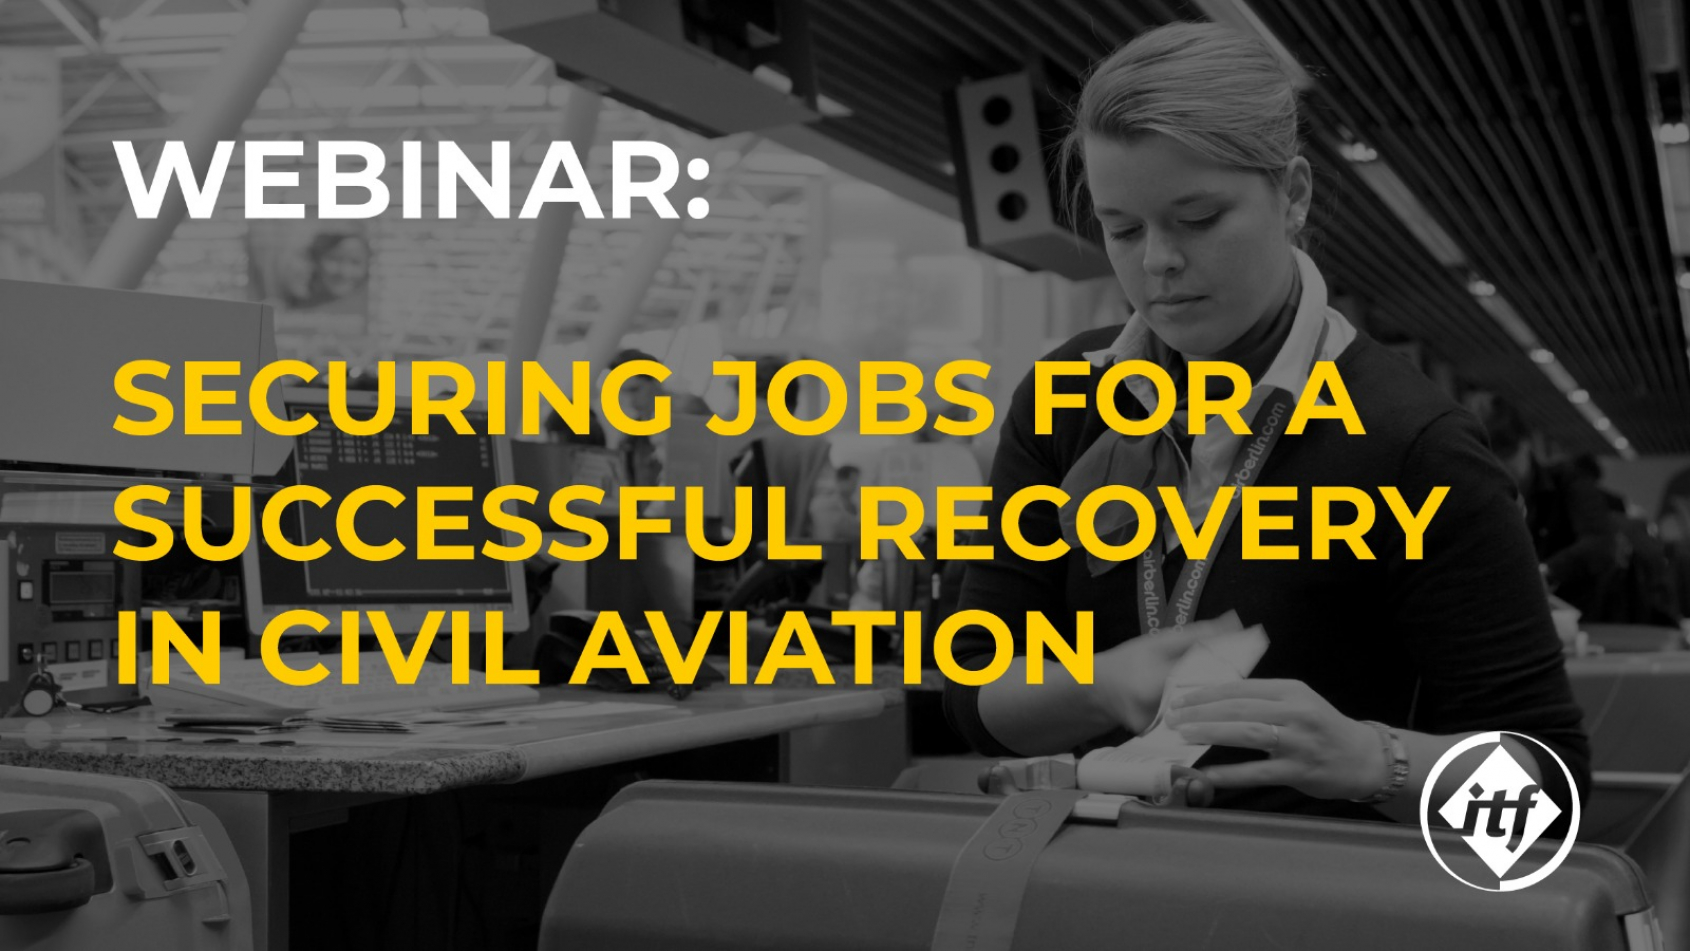 Securing jobs for a successful recovery in civil aviation